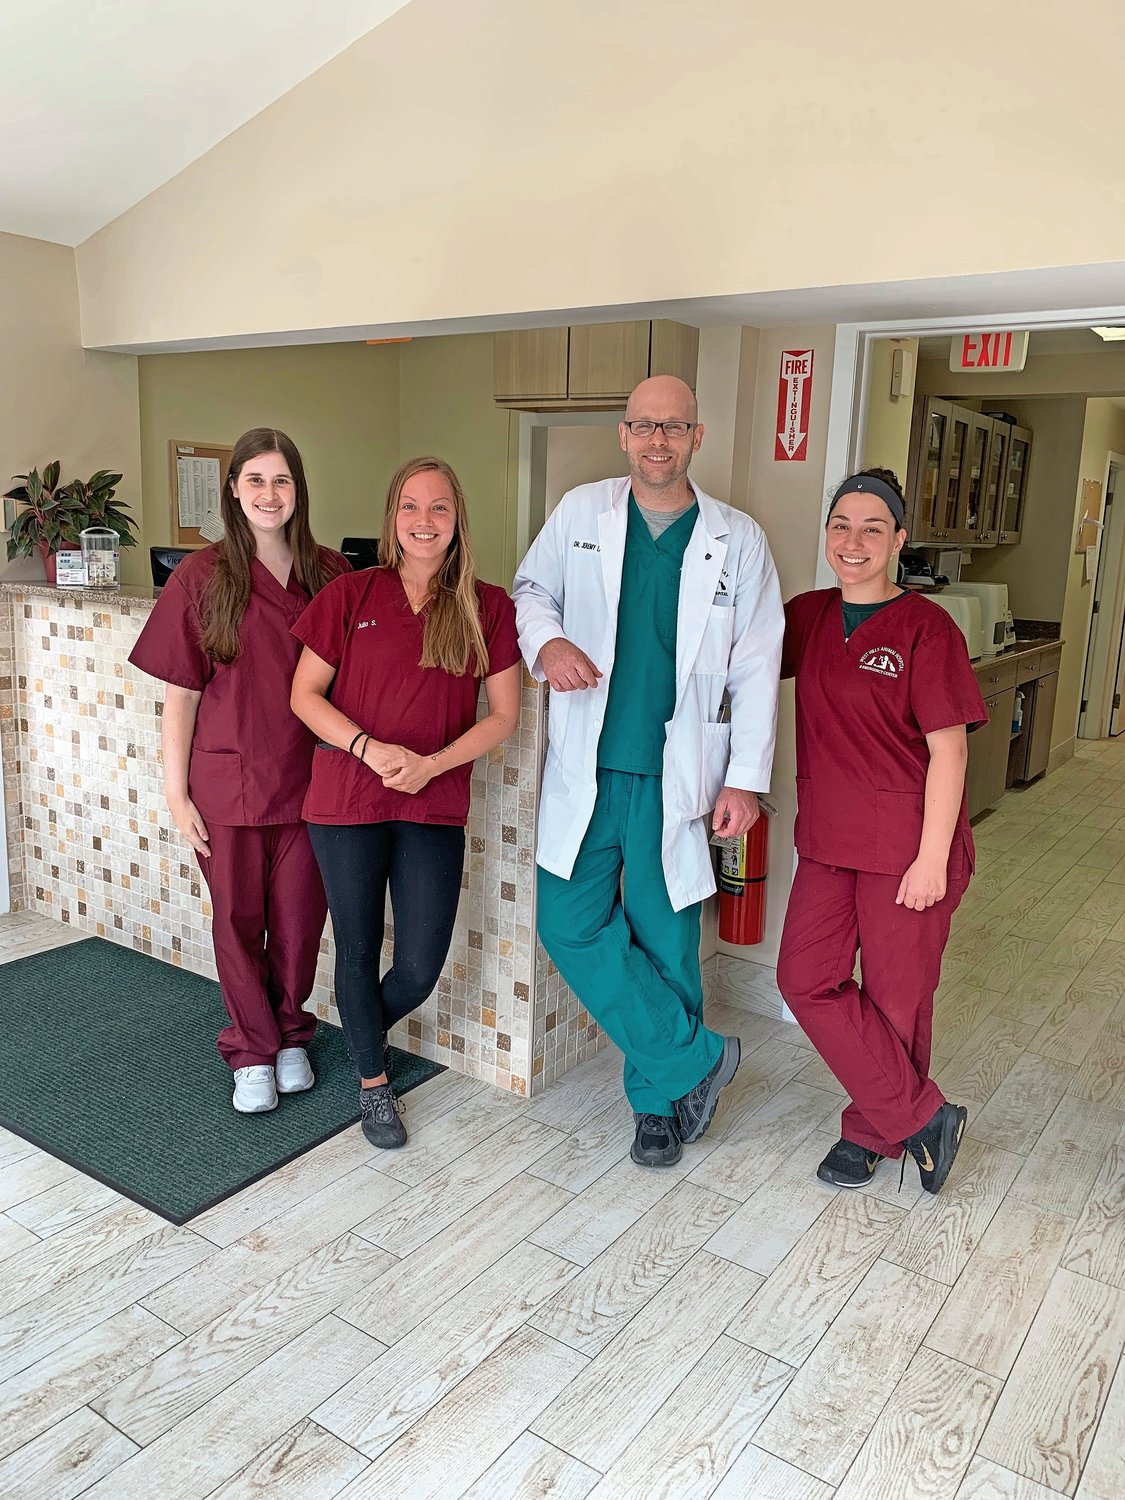 There to help at the Oyster Bay Animal Hospital are receptionists Lauren Pastolove, far left, and Julia Stanwycks, Dr. Jeremy Lancer and veterinary assistant Rita Ripani.